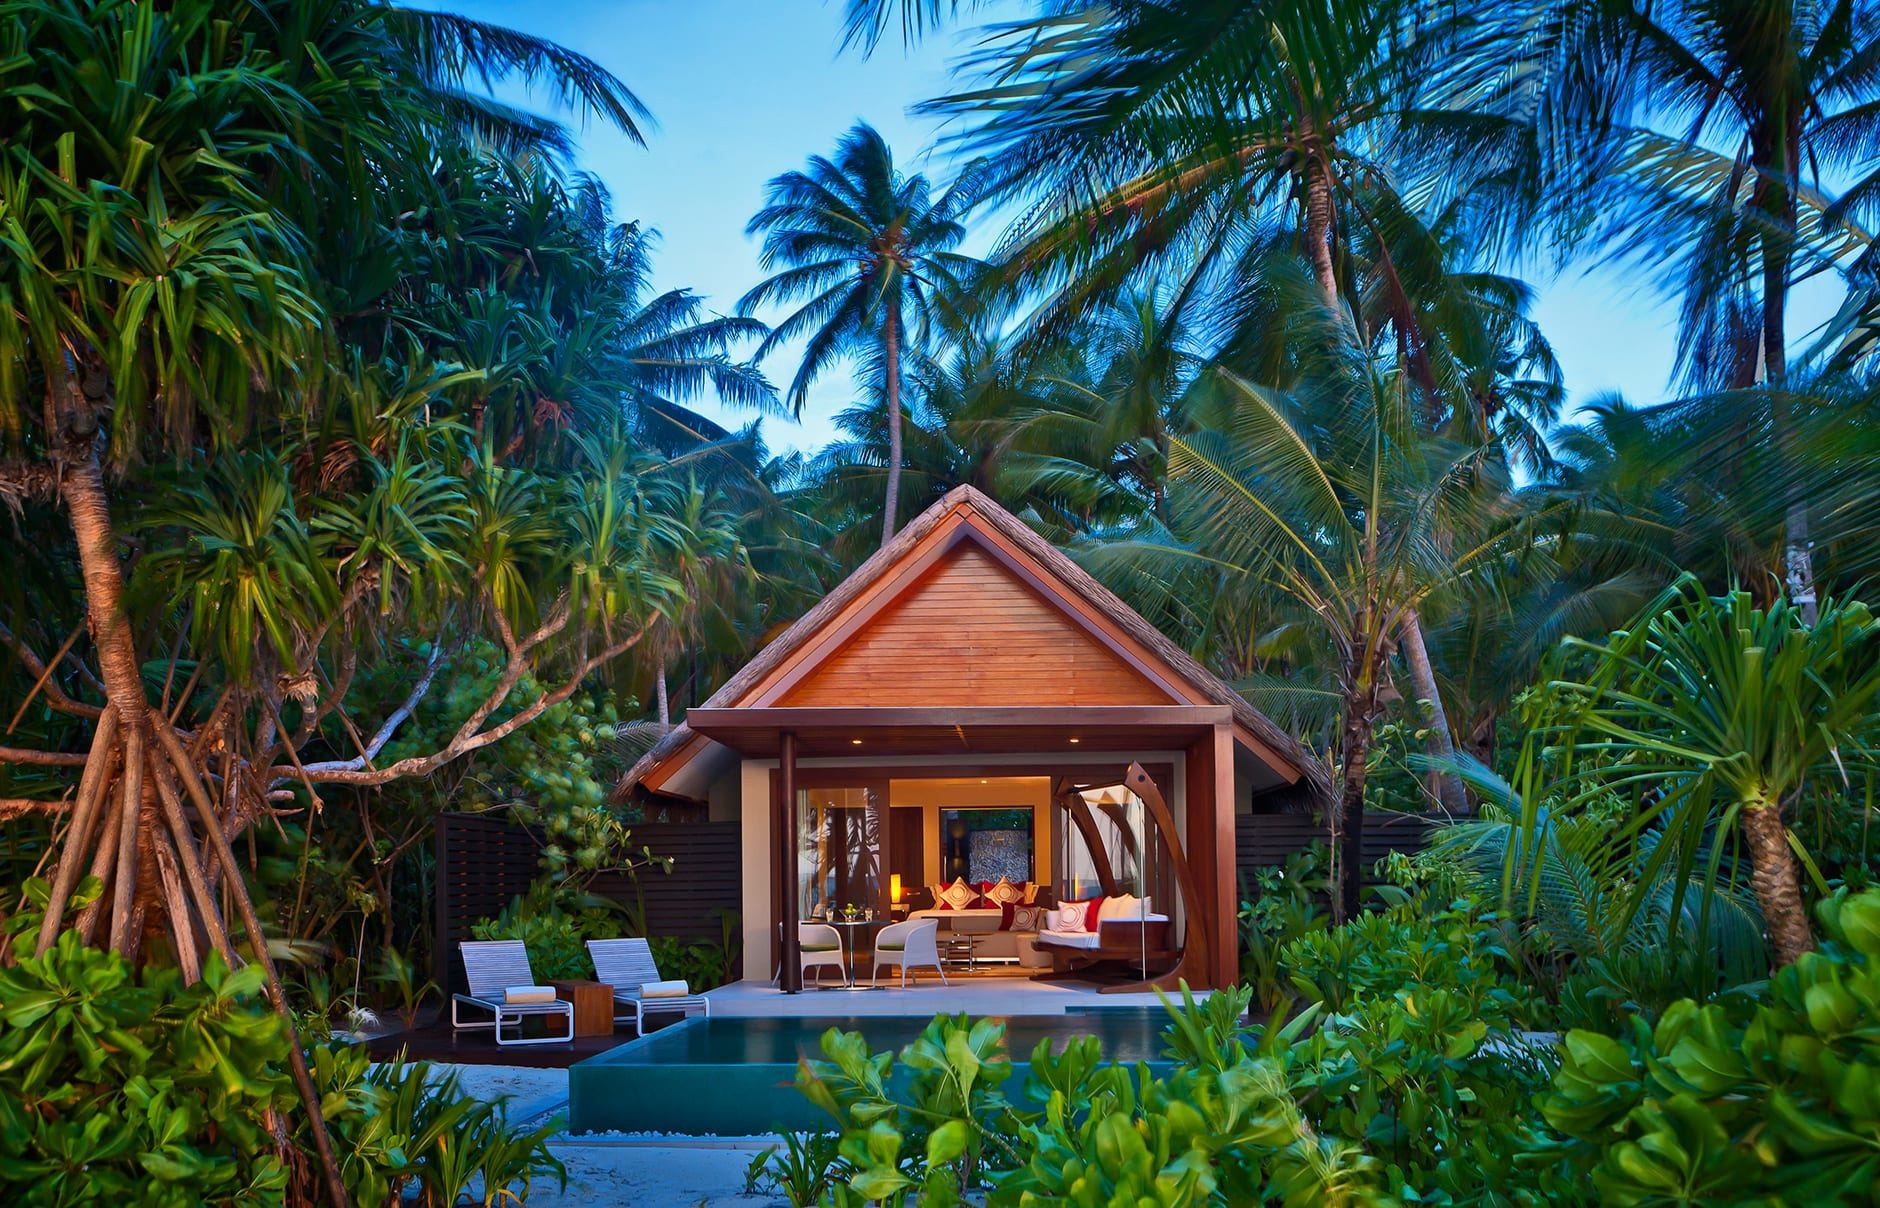 Niyama Beach Studio with pool. Niyama Private Islands Maldives. Hotel Review by TravelPlusStyle. Photo © NIYAMA